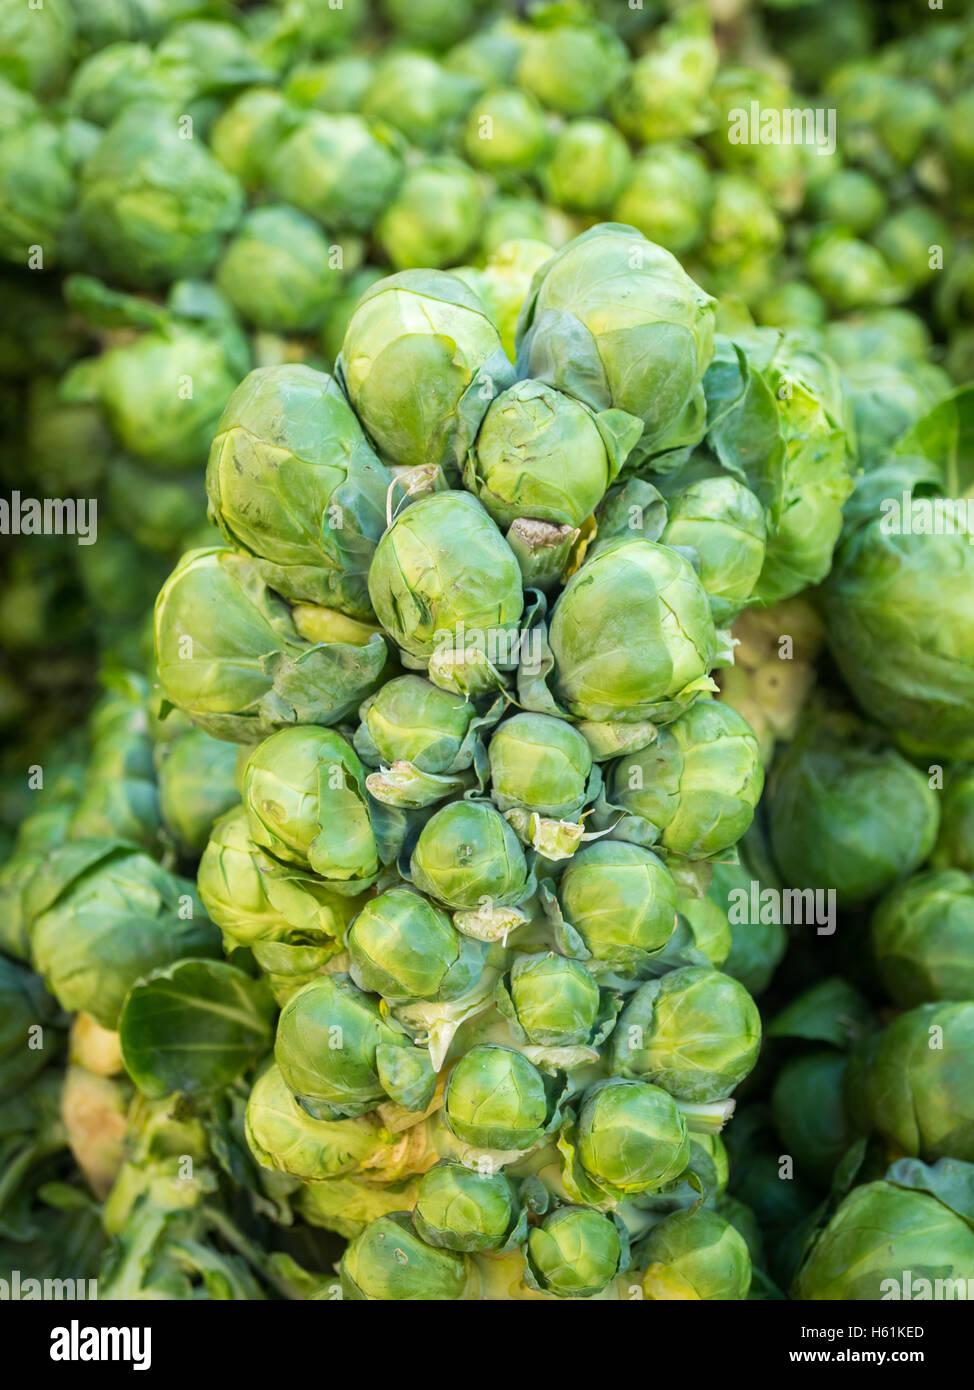 Brussel sprouts for sale at the City Market (104 Street Market) in Edmonton, Alberta, Canada. - Stock Image